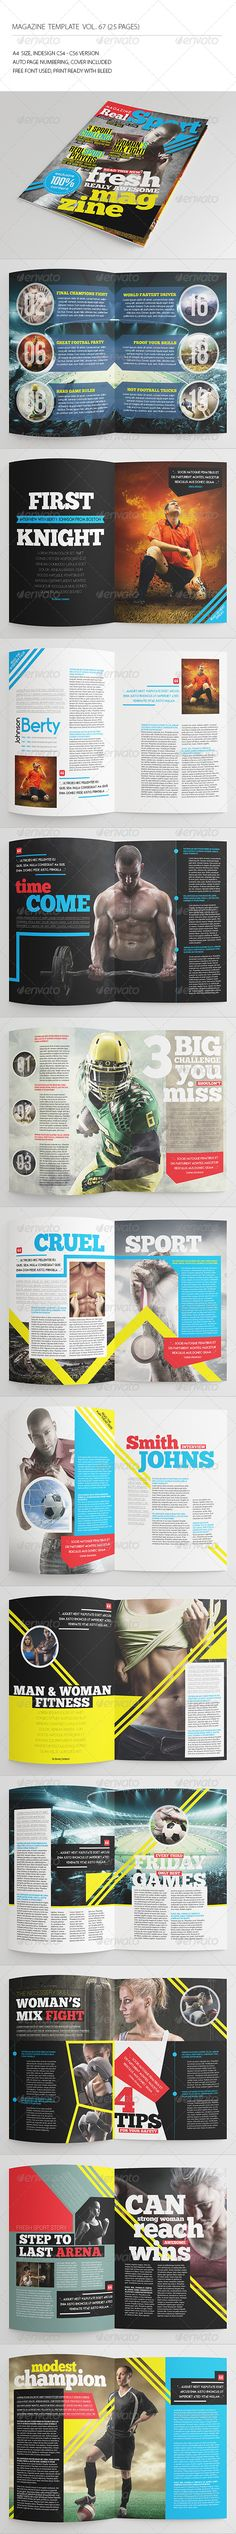 25 Pages Sport Magazine Vol67 by -BeCreative- 25 Pages Sport Magazine Vol67: This item consist of 25 pages that fully editable and customizable.Detail :25 pages Size A4 (8.27×1